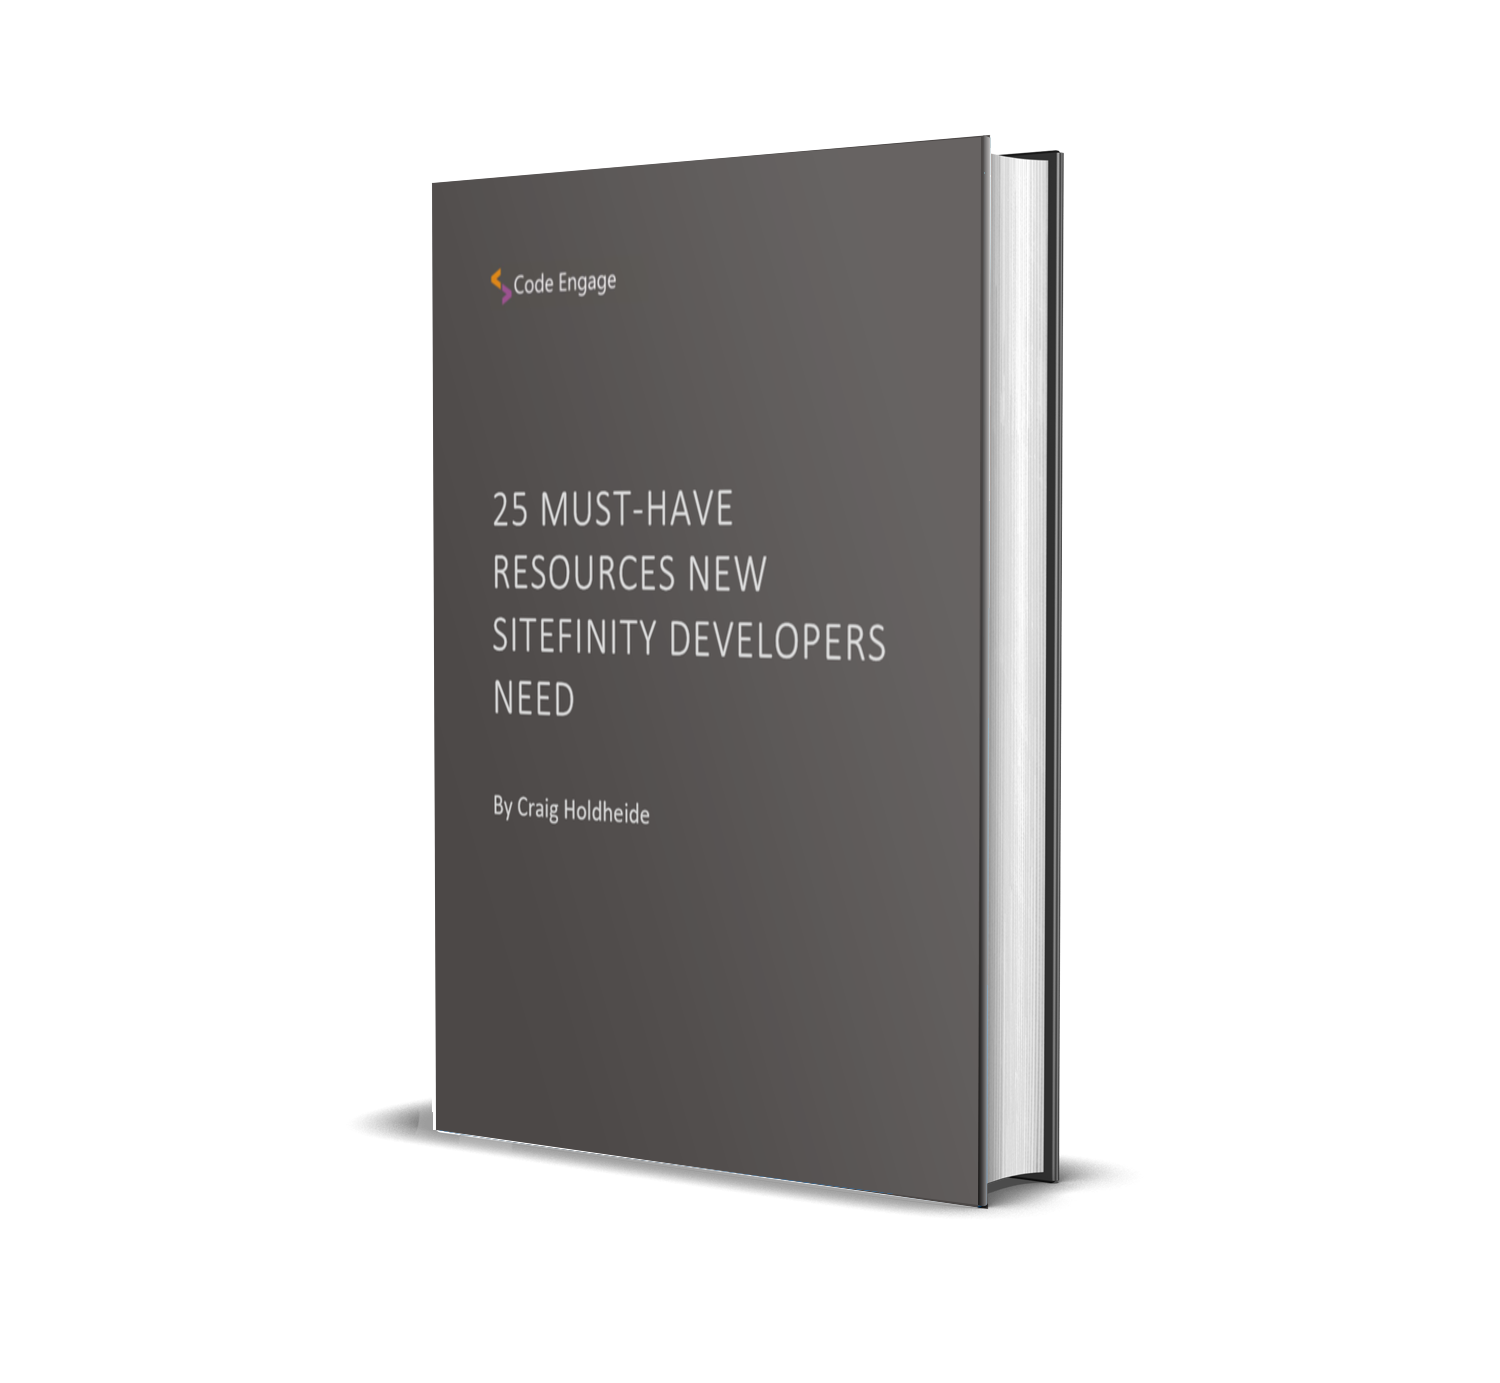 25 Must-Have Resources NEW Sitefinity Developers Need